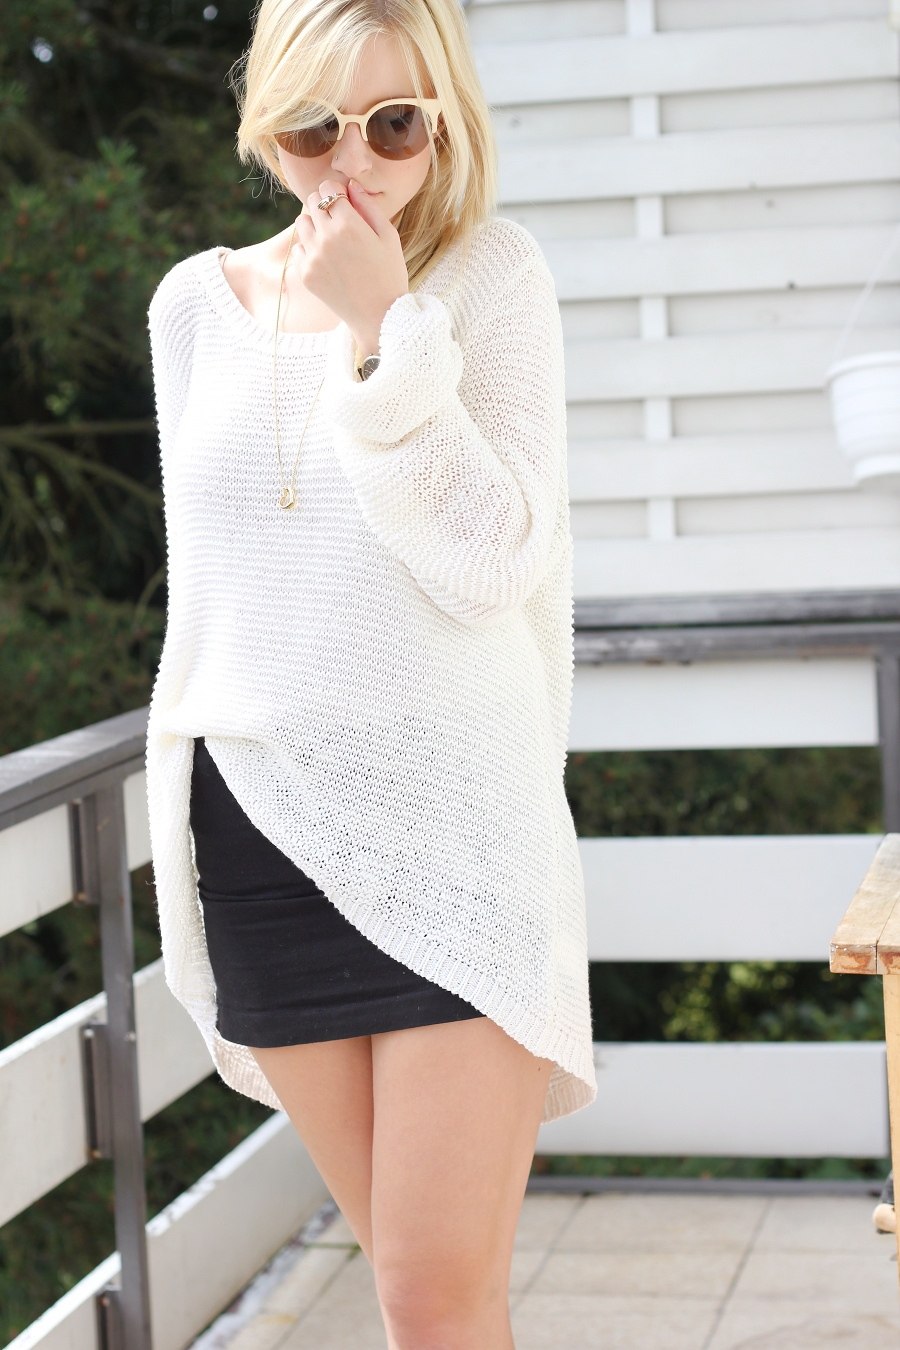 outfit-white-knitter-skirt-blonde